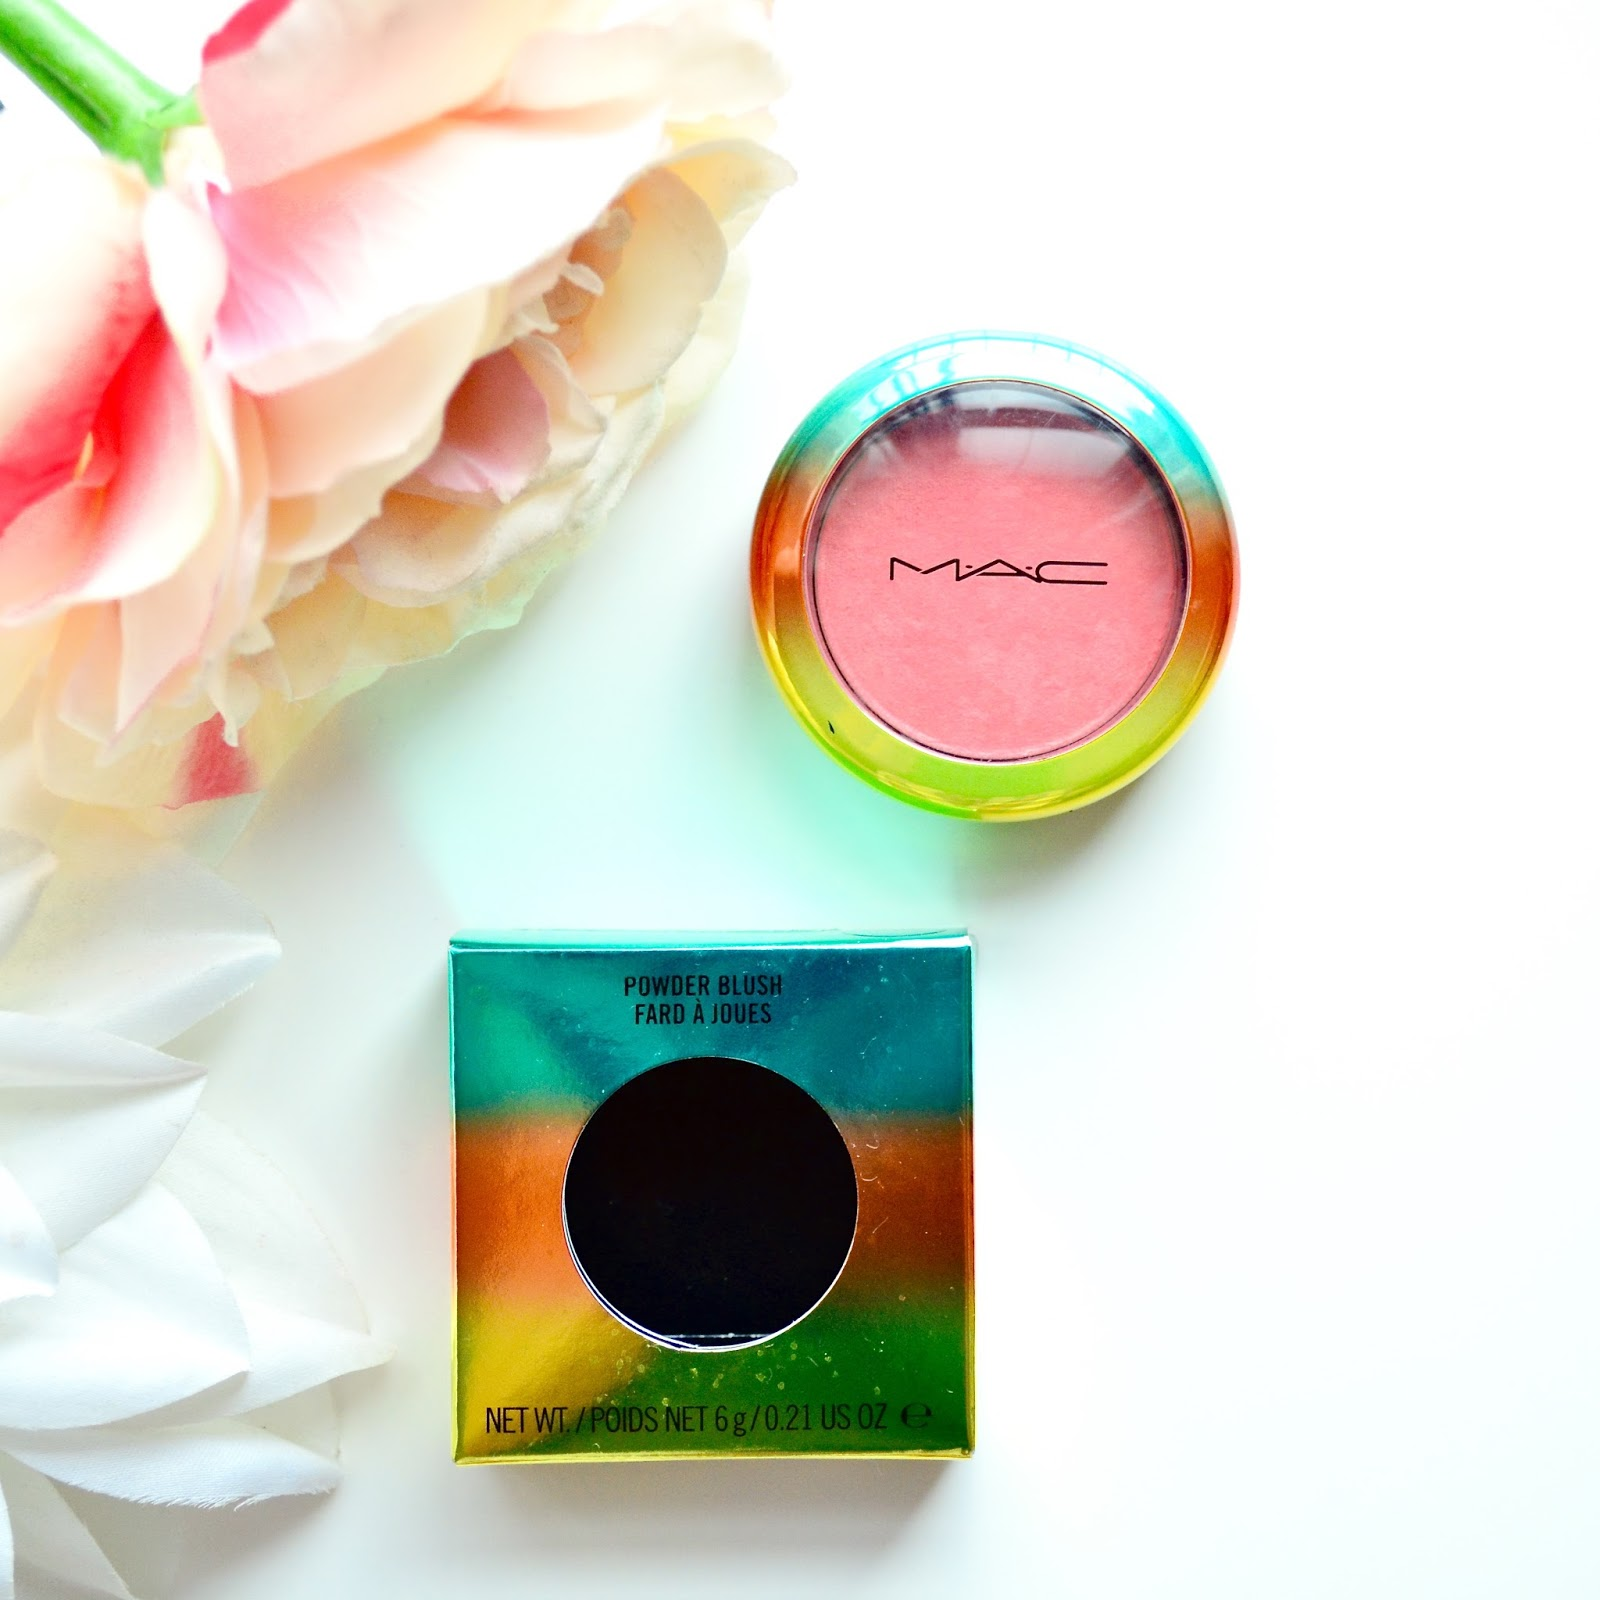 Mac, Mac Blush, Mac Hipness, Mac Wash And Dry Collection, Hipness Blush, Mac Limited Edition, Blusher, Makeup, Summer Makeup